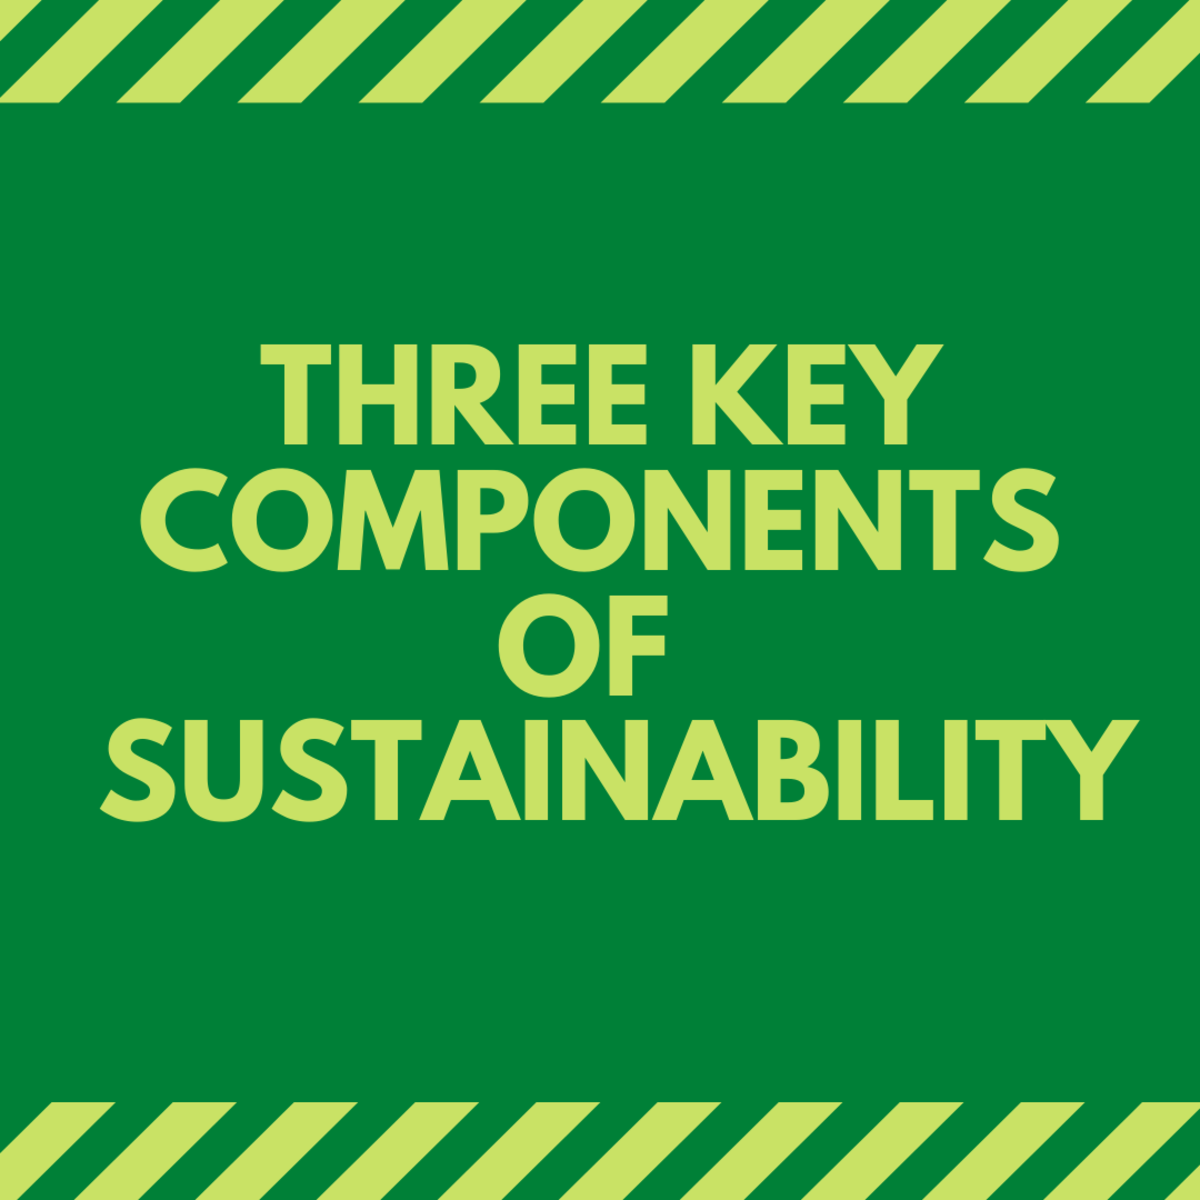 Learn more about sustainability in this article.